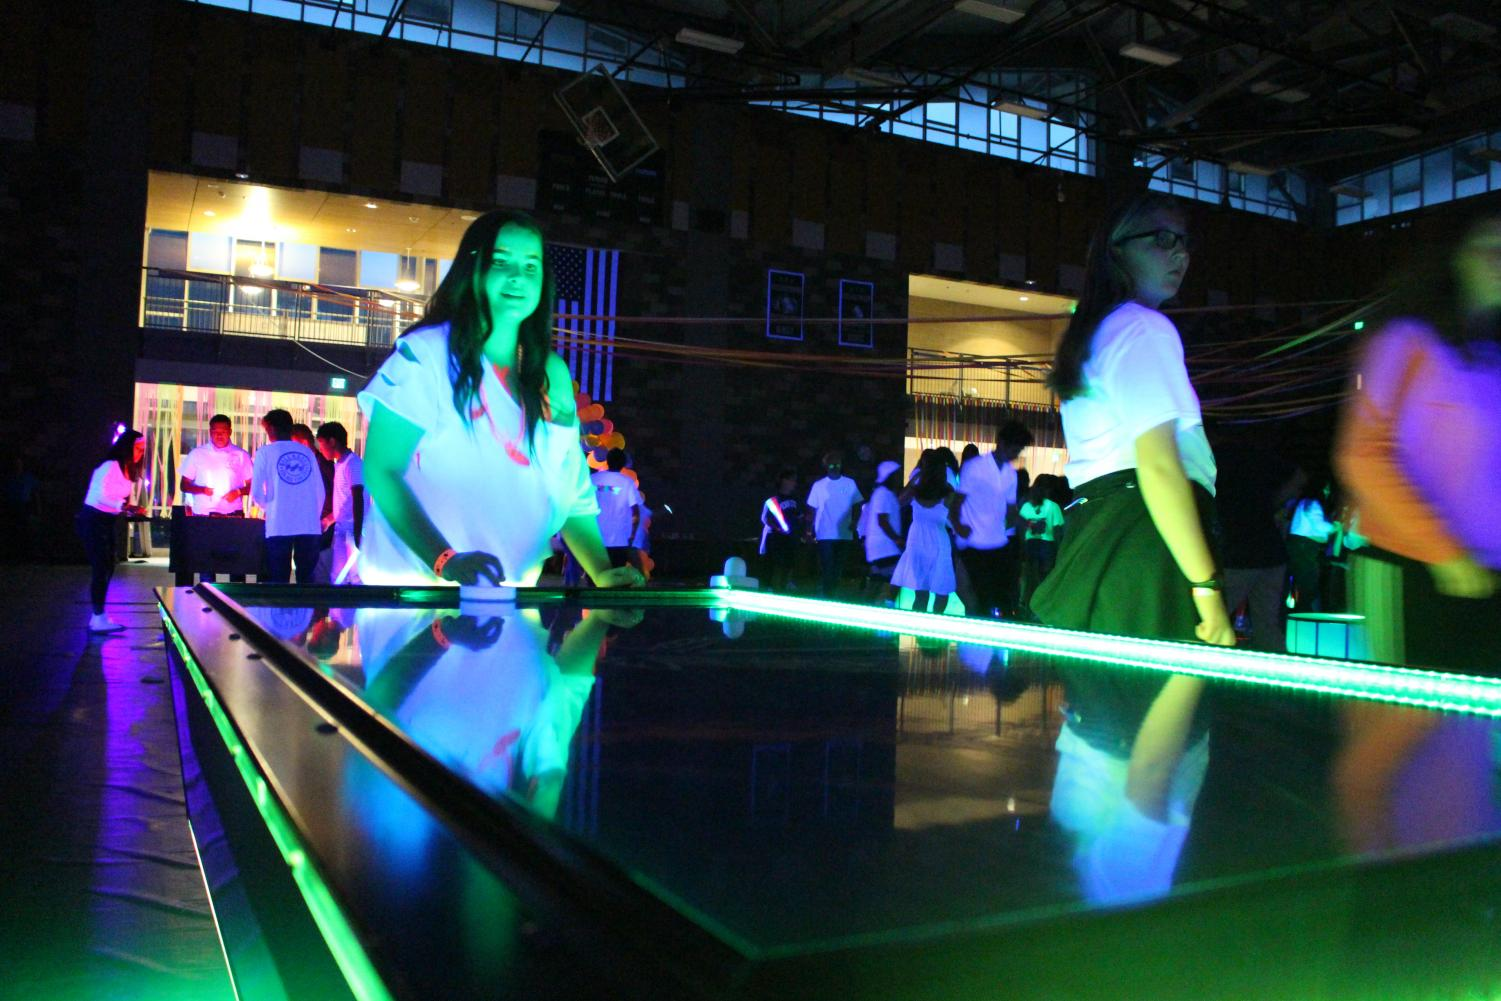 Students+take+a+break+from+dancing+and+play+light+up+neon+air+hockey+during+MORP.+The+dance+also+included+activities+such+as+foosball+and+a+photobooth+for+students+to+participate+in.